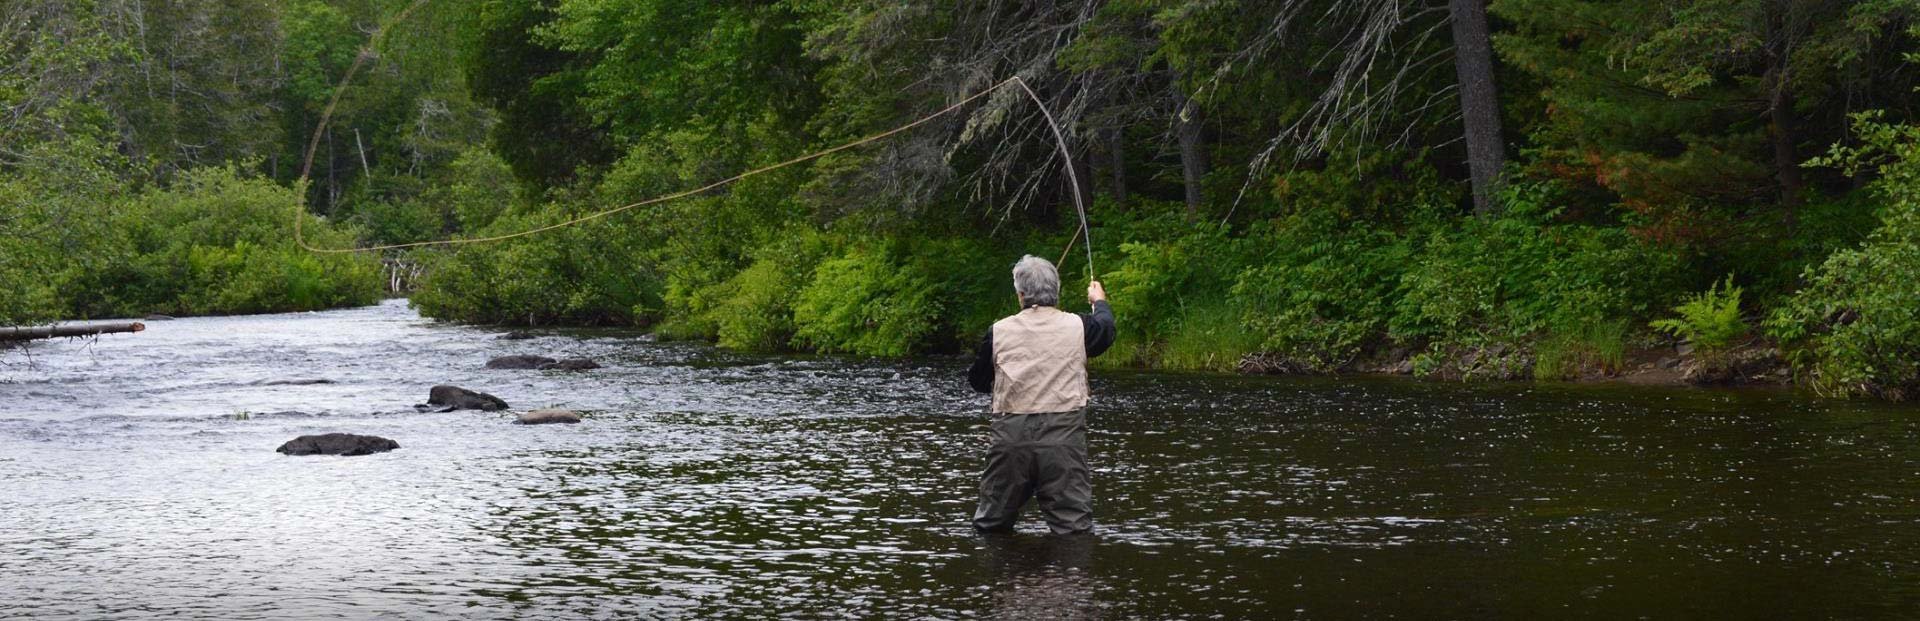 Northern maine fishing trips spaulding lake outfitters for Lake fishing near me